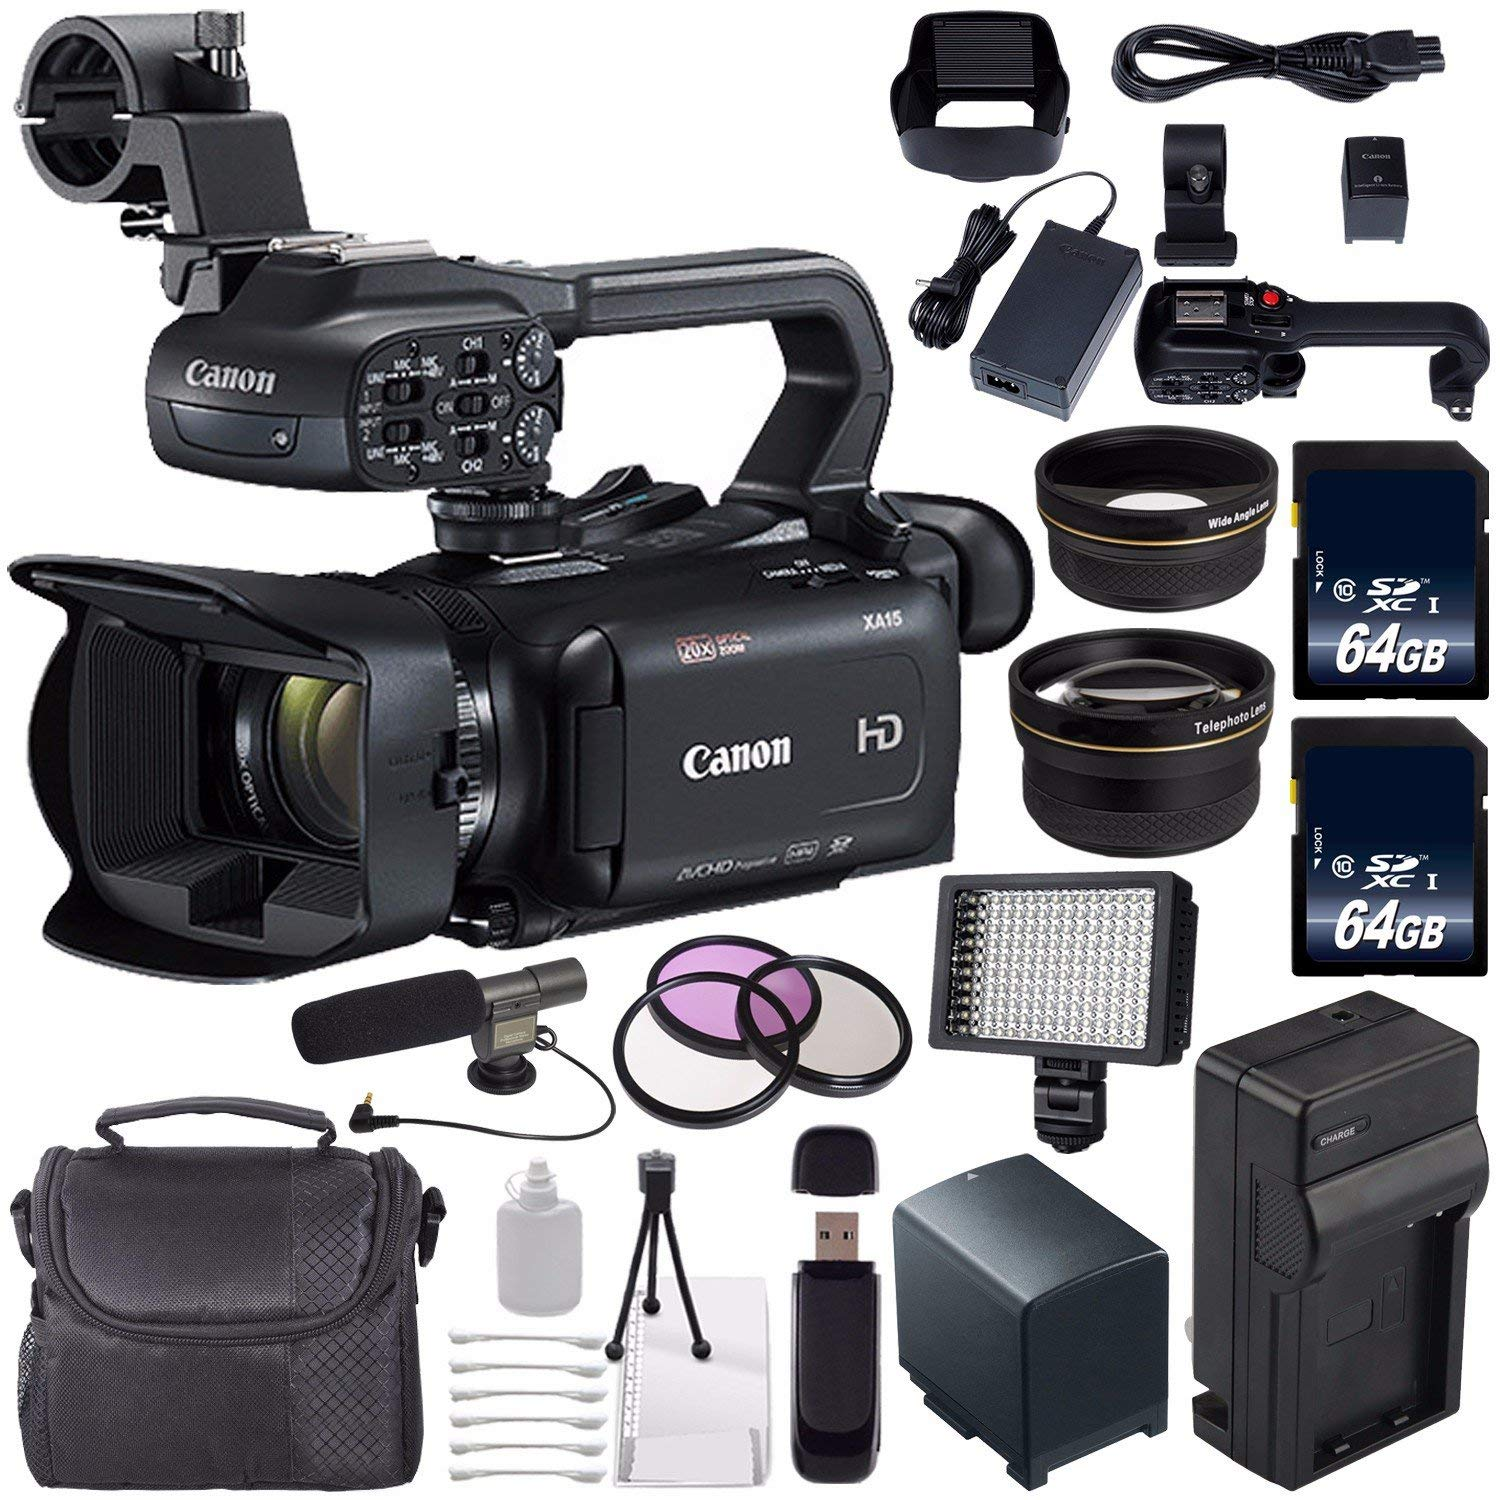 Canon XA11 Compact Full HD ENG Camcorder #2218C002 + 64GB Memory Card + BP-820 Replacement Lithium Ion Battery Bundle 3 by Canon